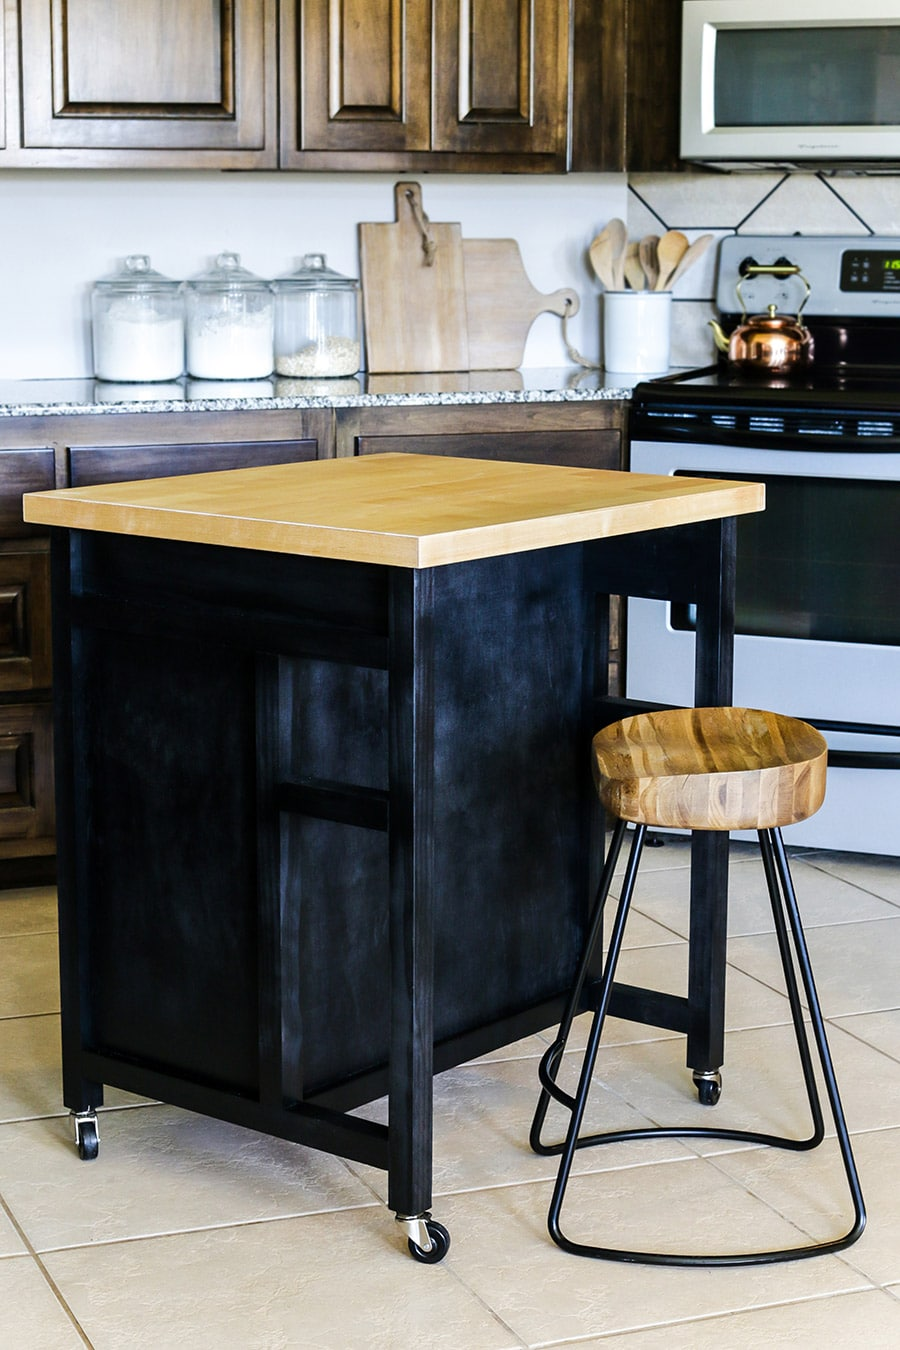 How To Build A Diy Kitchen Island The House Of Wood